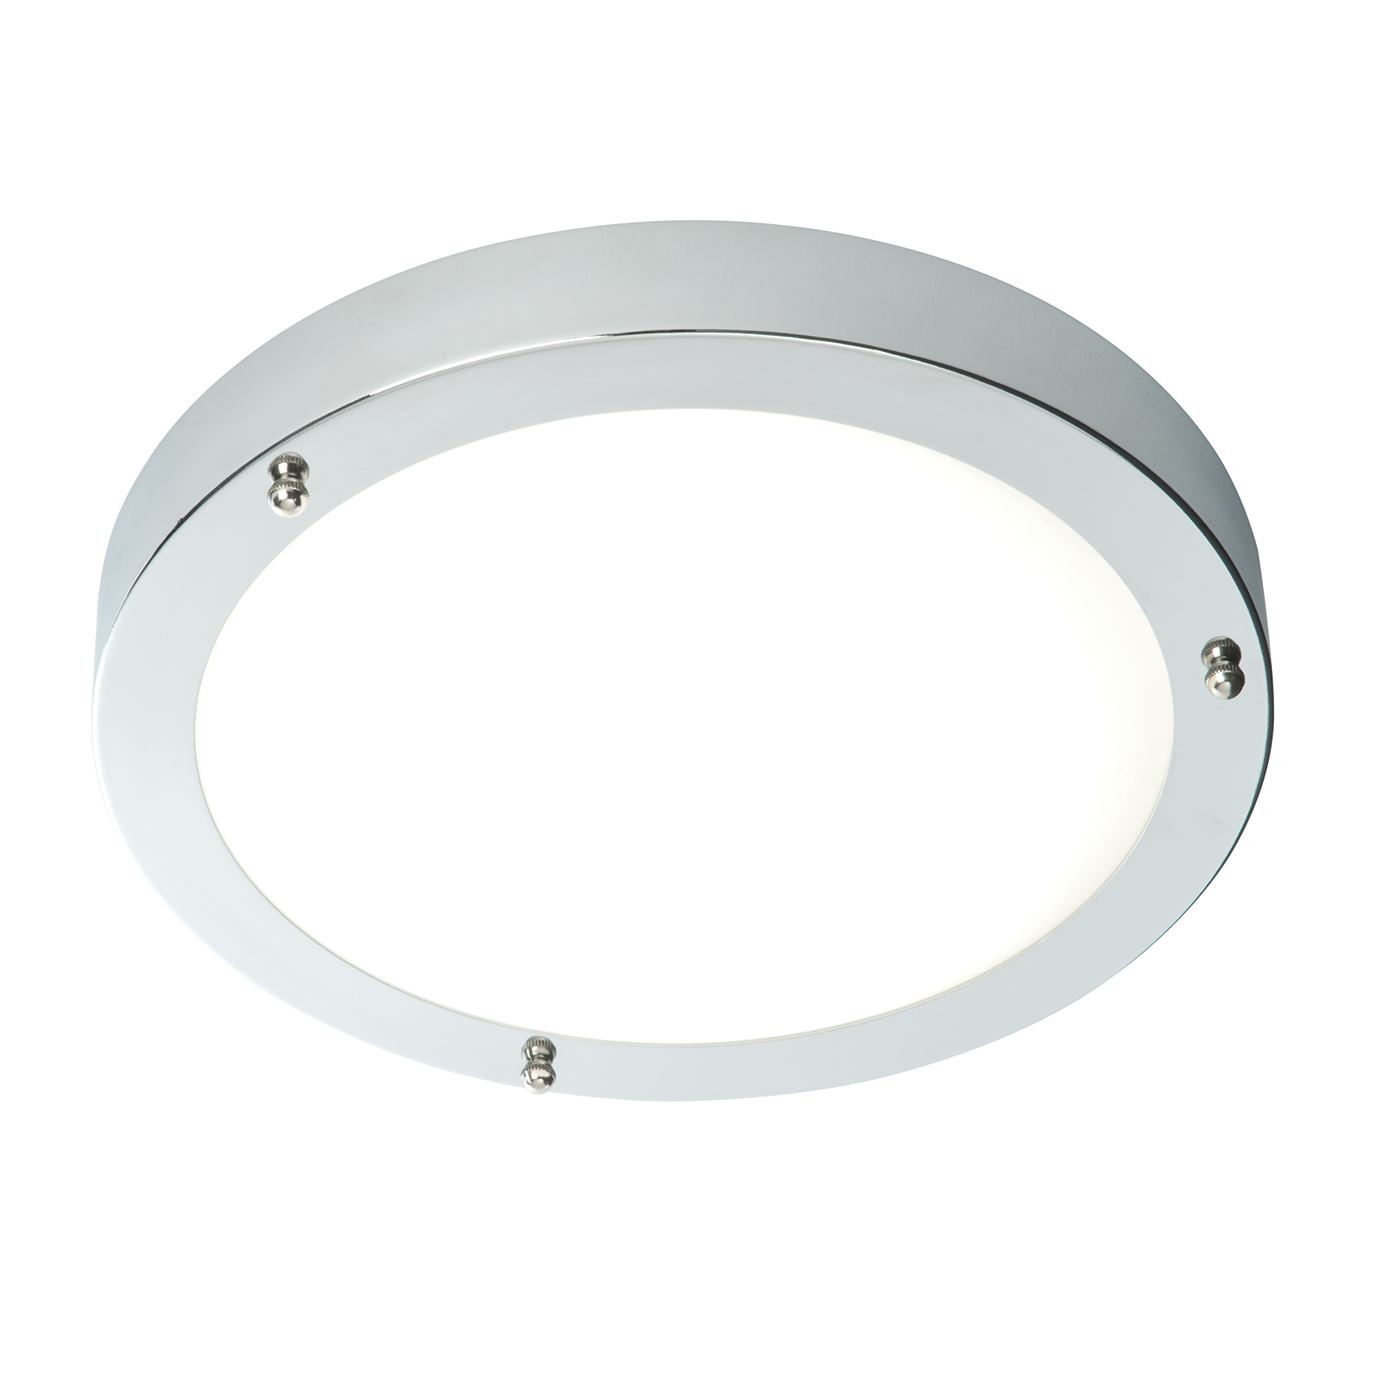 Endon Portico LED 300mm flush bathroom ceiling light IP44 9W chrome glass